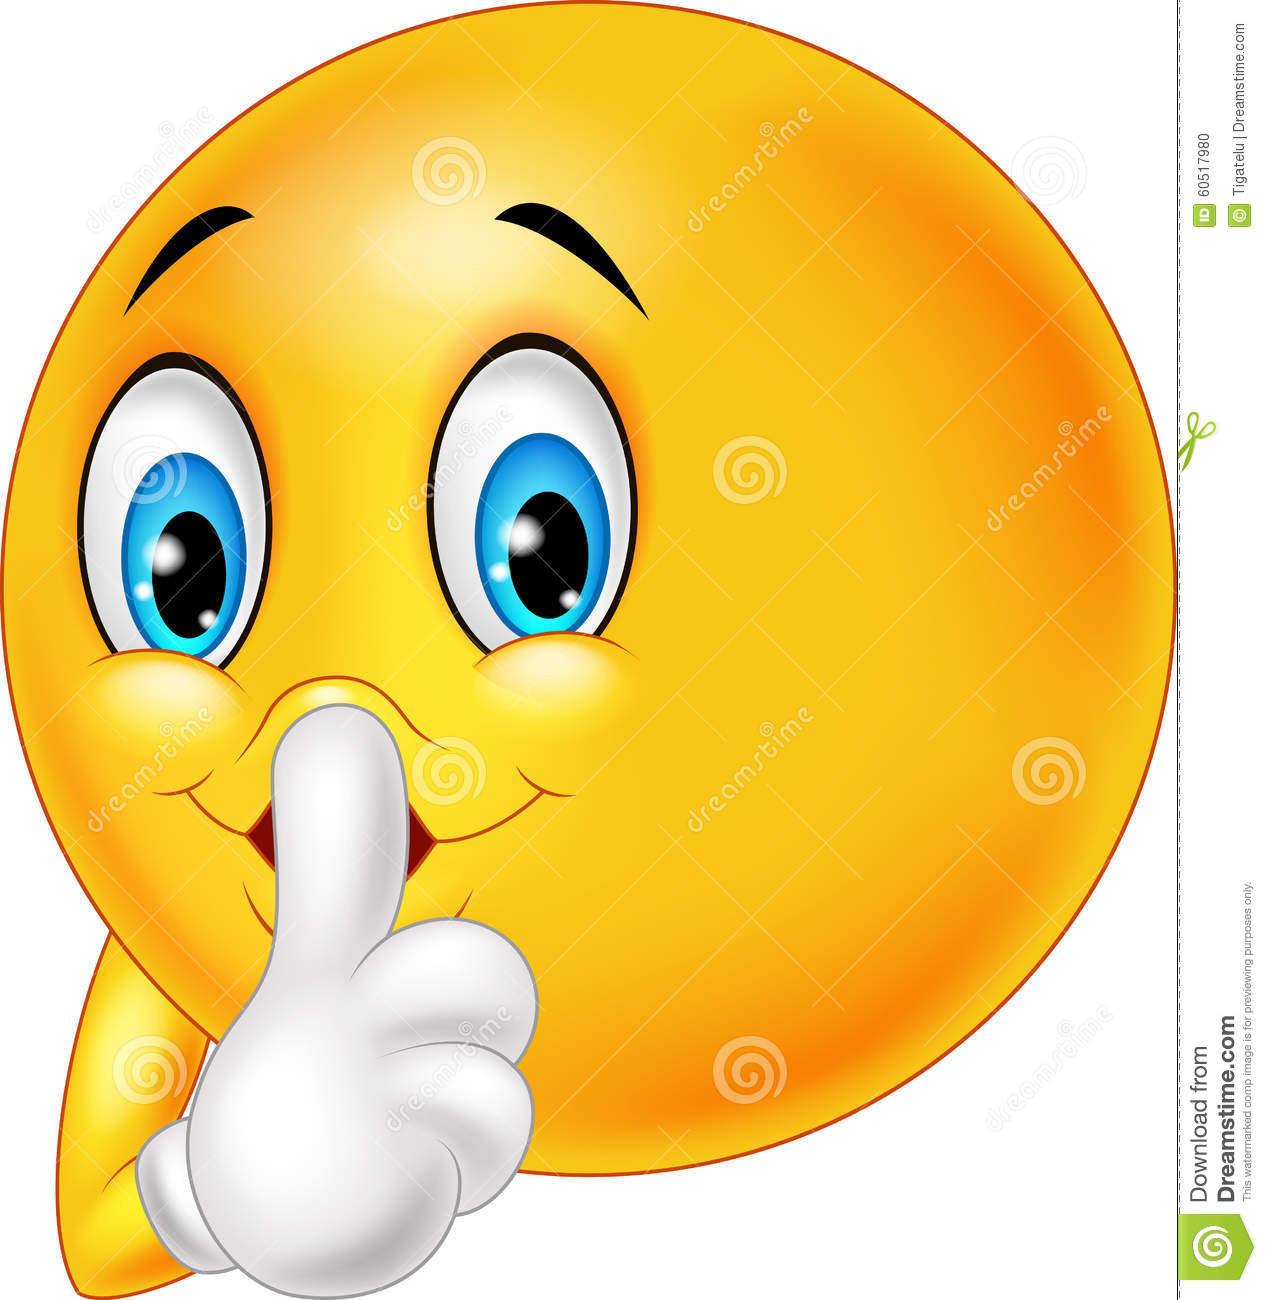 emoticon happy making silence sign stock illustration image 60517980 vector facelift vector facts